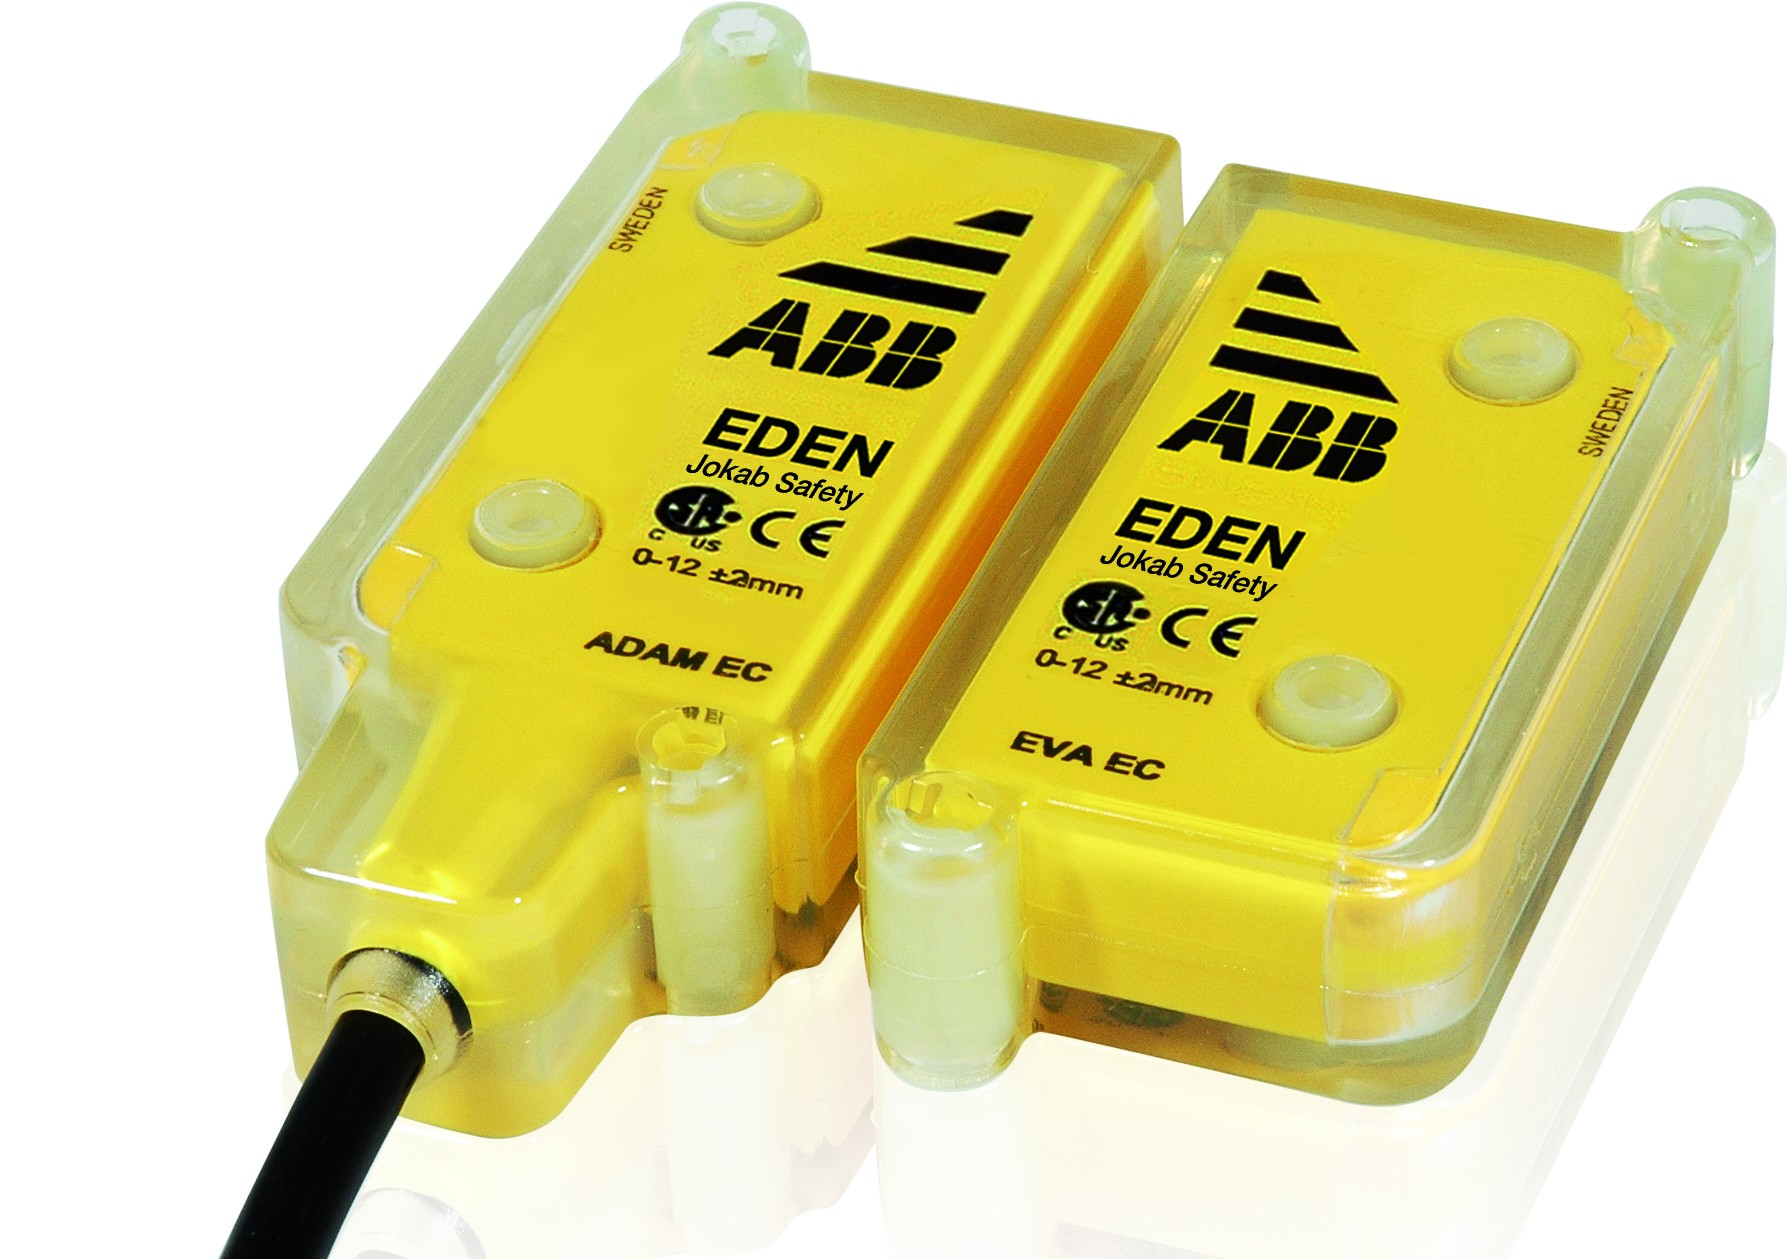 Eden is a non-contact safety sensor used on interlocked gates and hatches for non-magnetic, non-contact closure safety that has built in diagnostics and quick disconnect.  The maximum sensing distance is 15 mm ± 2 mm. Up to 30 Eden sensors can be connected in series to achieve the same safety level in the safety circuit. It is also possible to connect safety light beams and E-stops in the same safety circuit.(Click on photo to enlarge it)